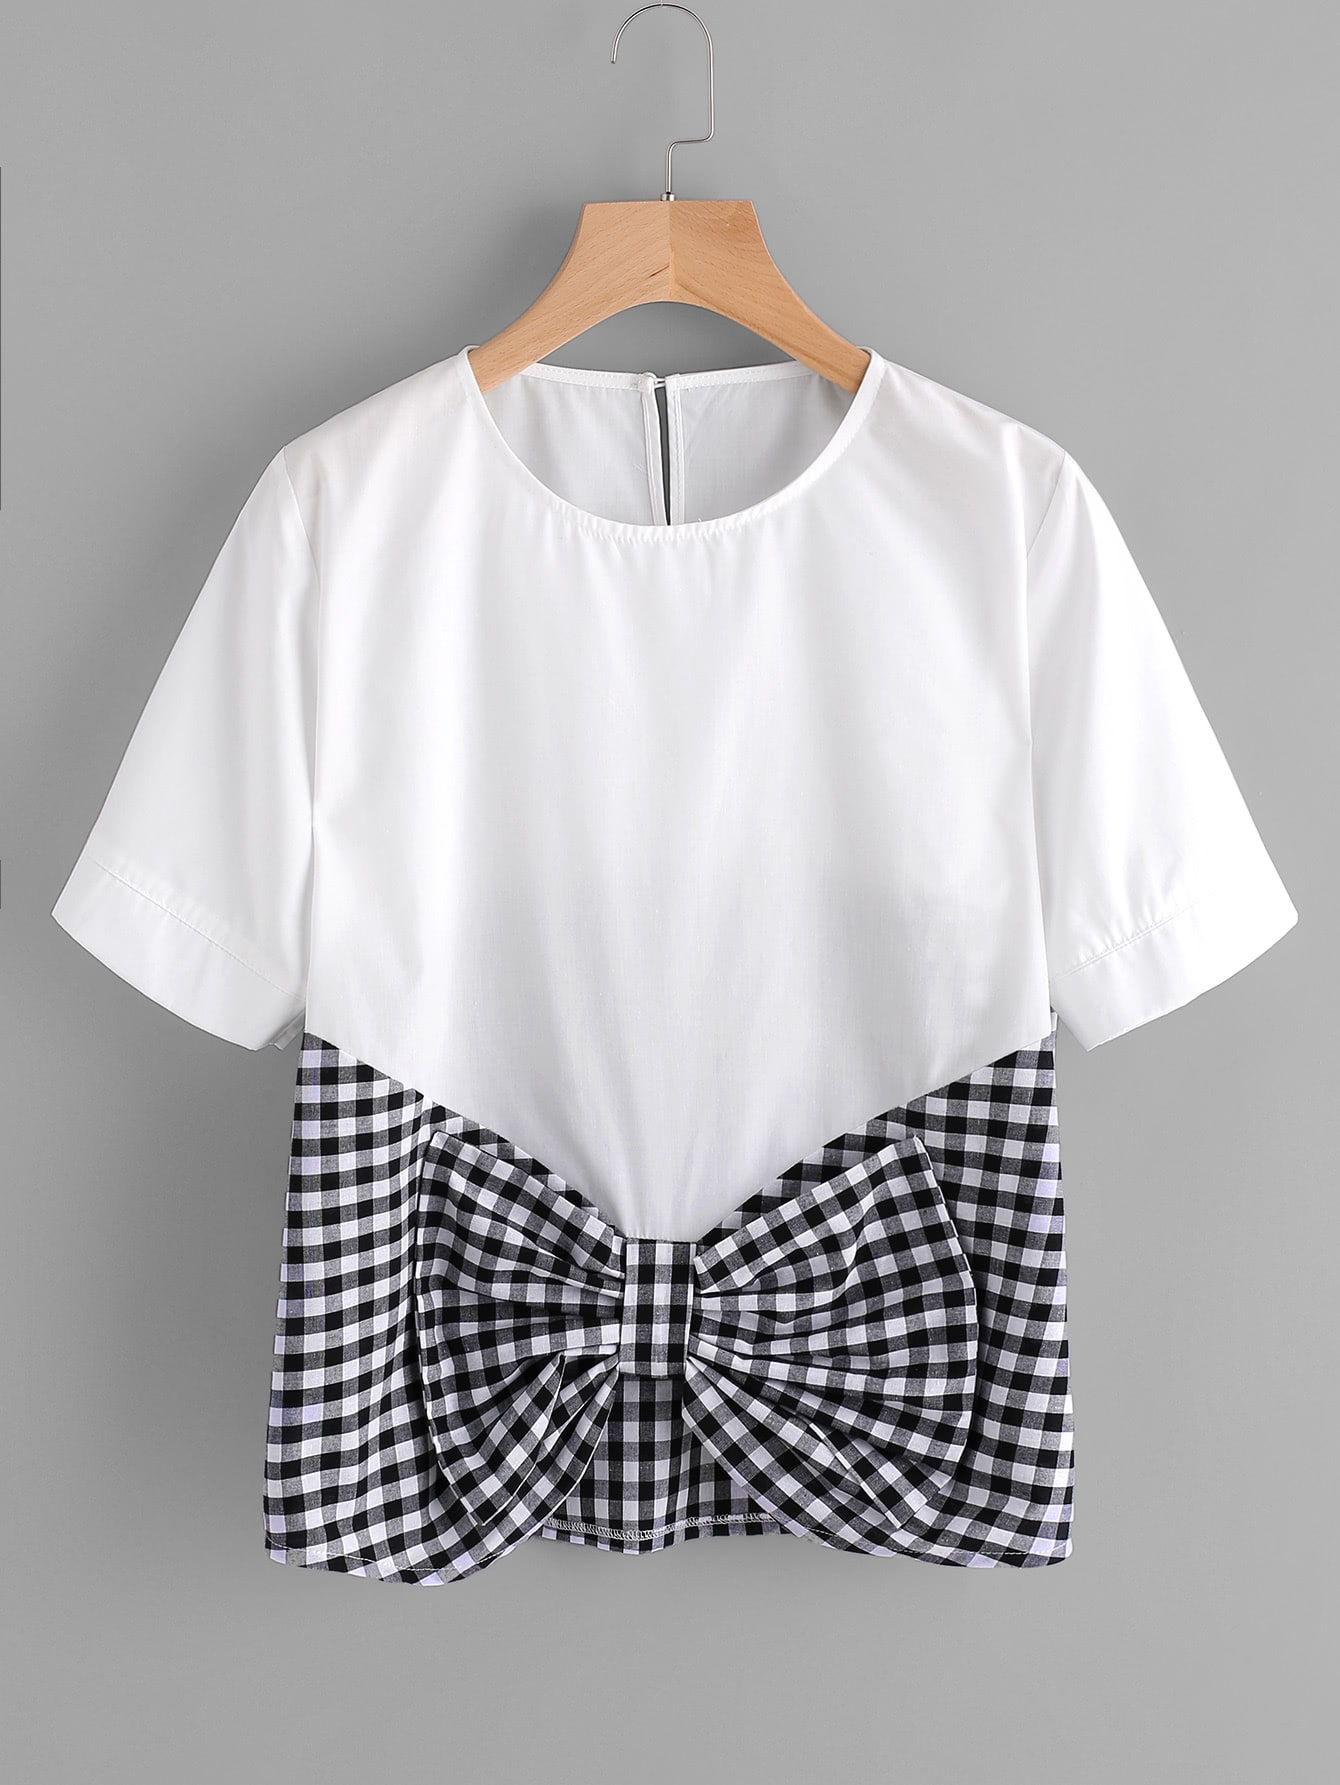 Contrast Gingham Bow Front Keyhole Top blouse170510005